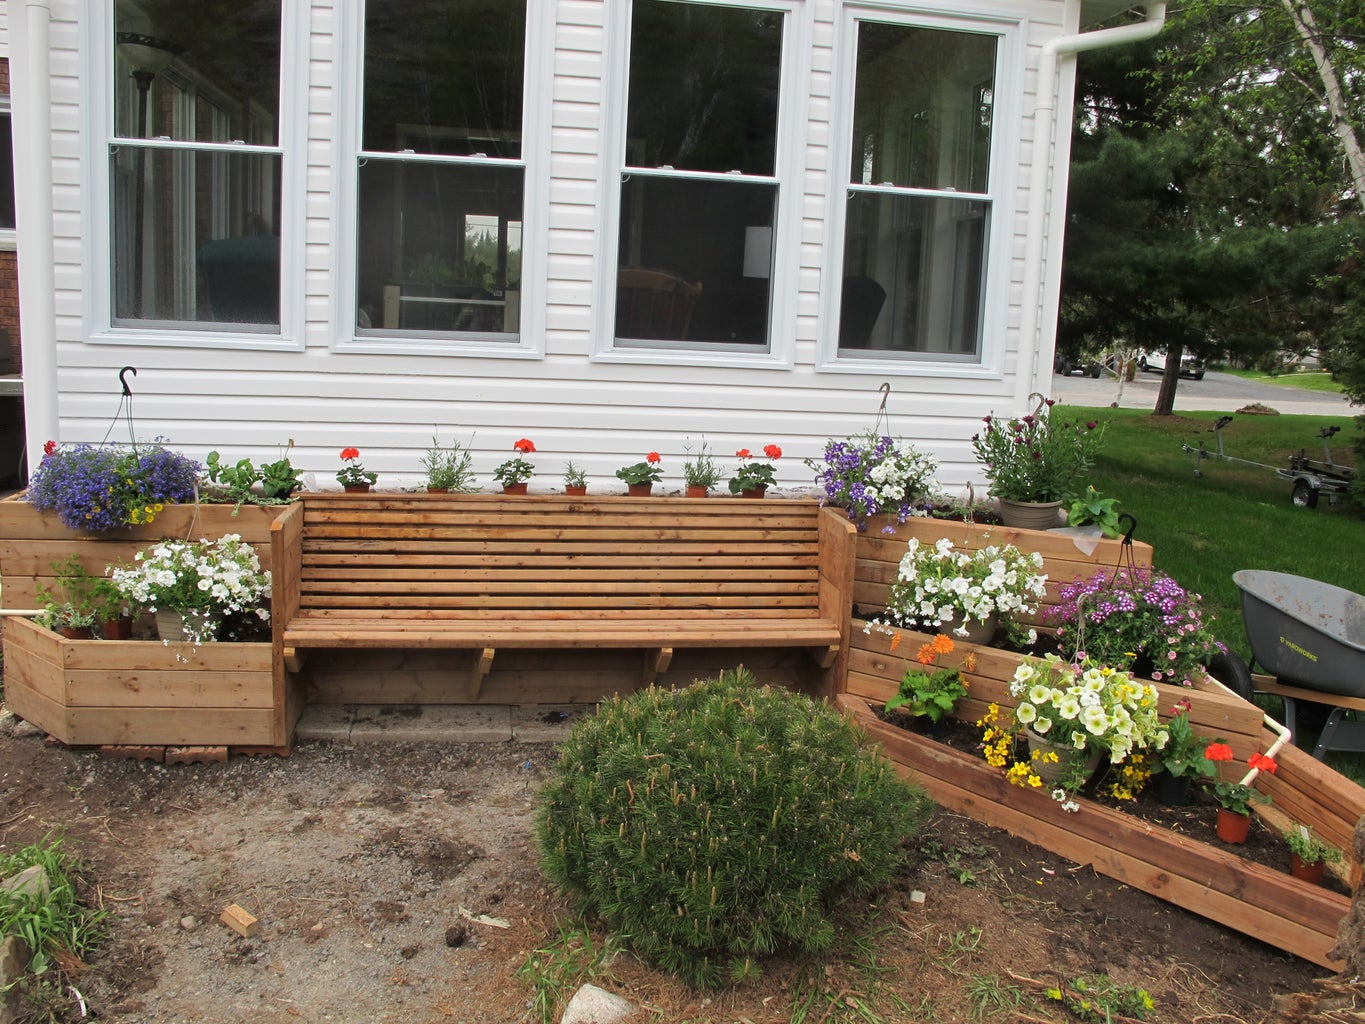 Self Watering Planter System